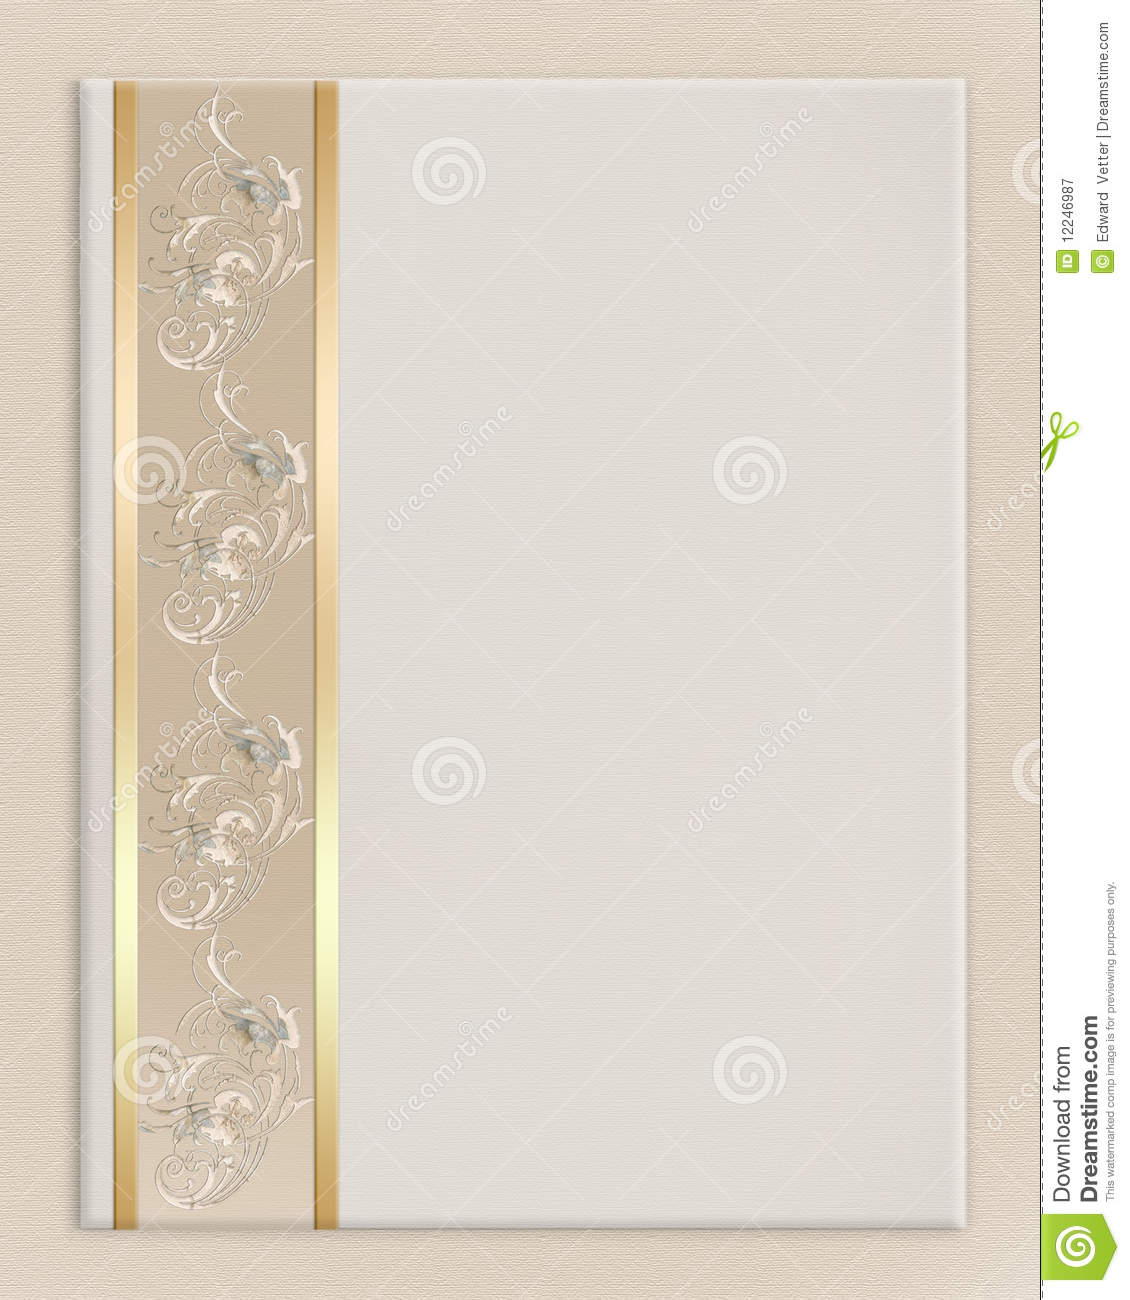 ... border on off white canvas background with decorative gold, floral